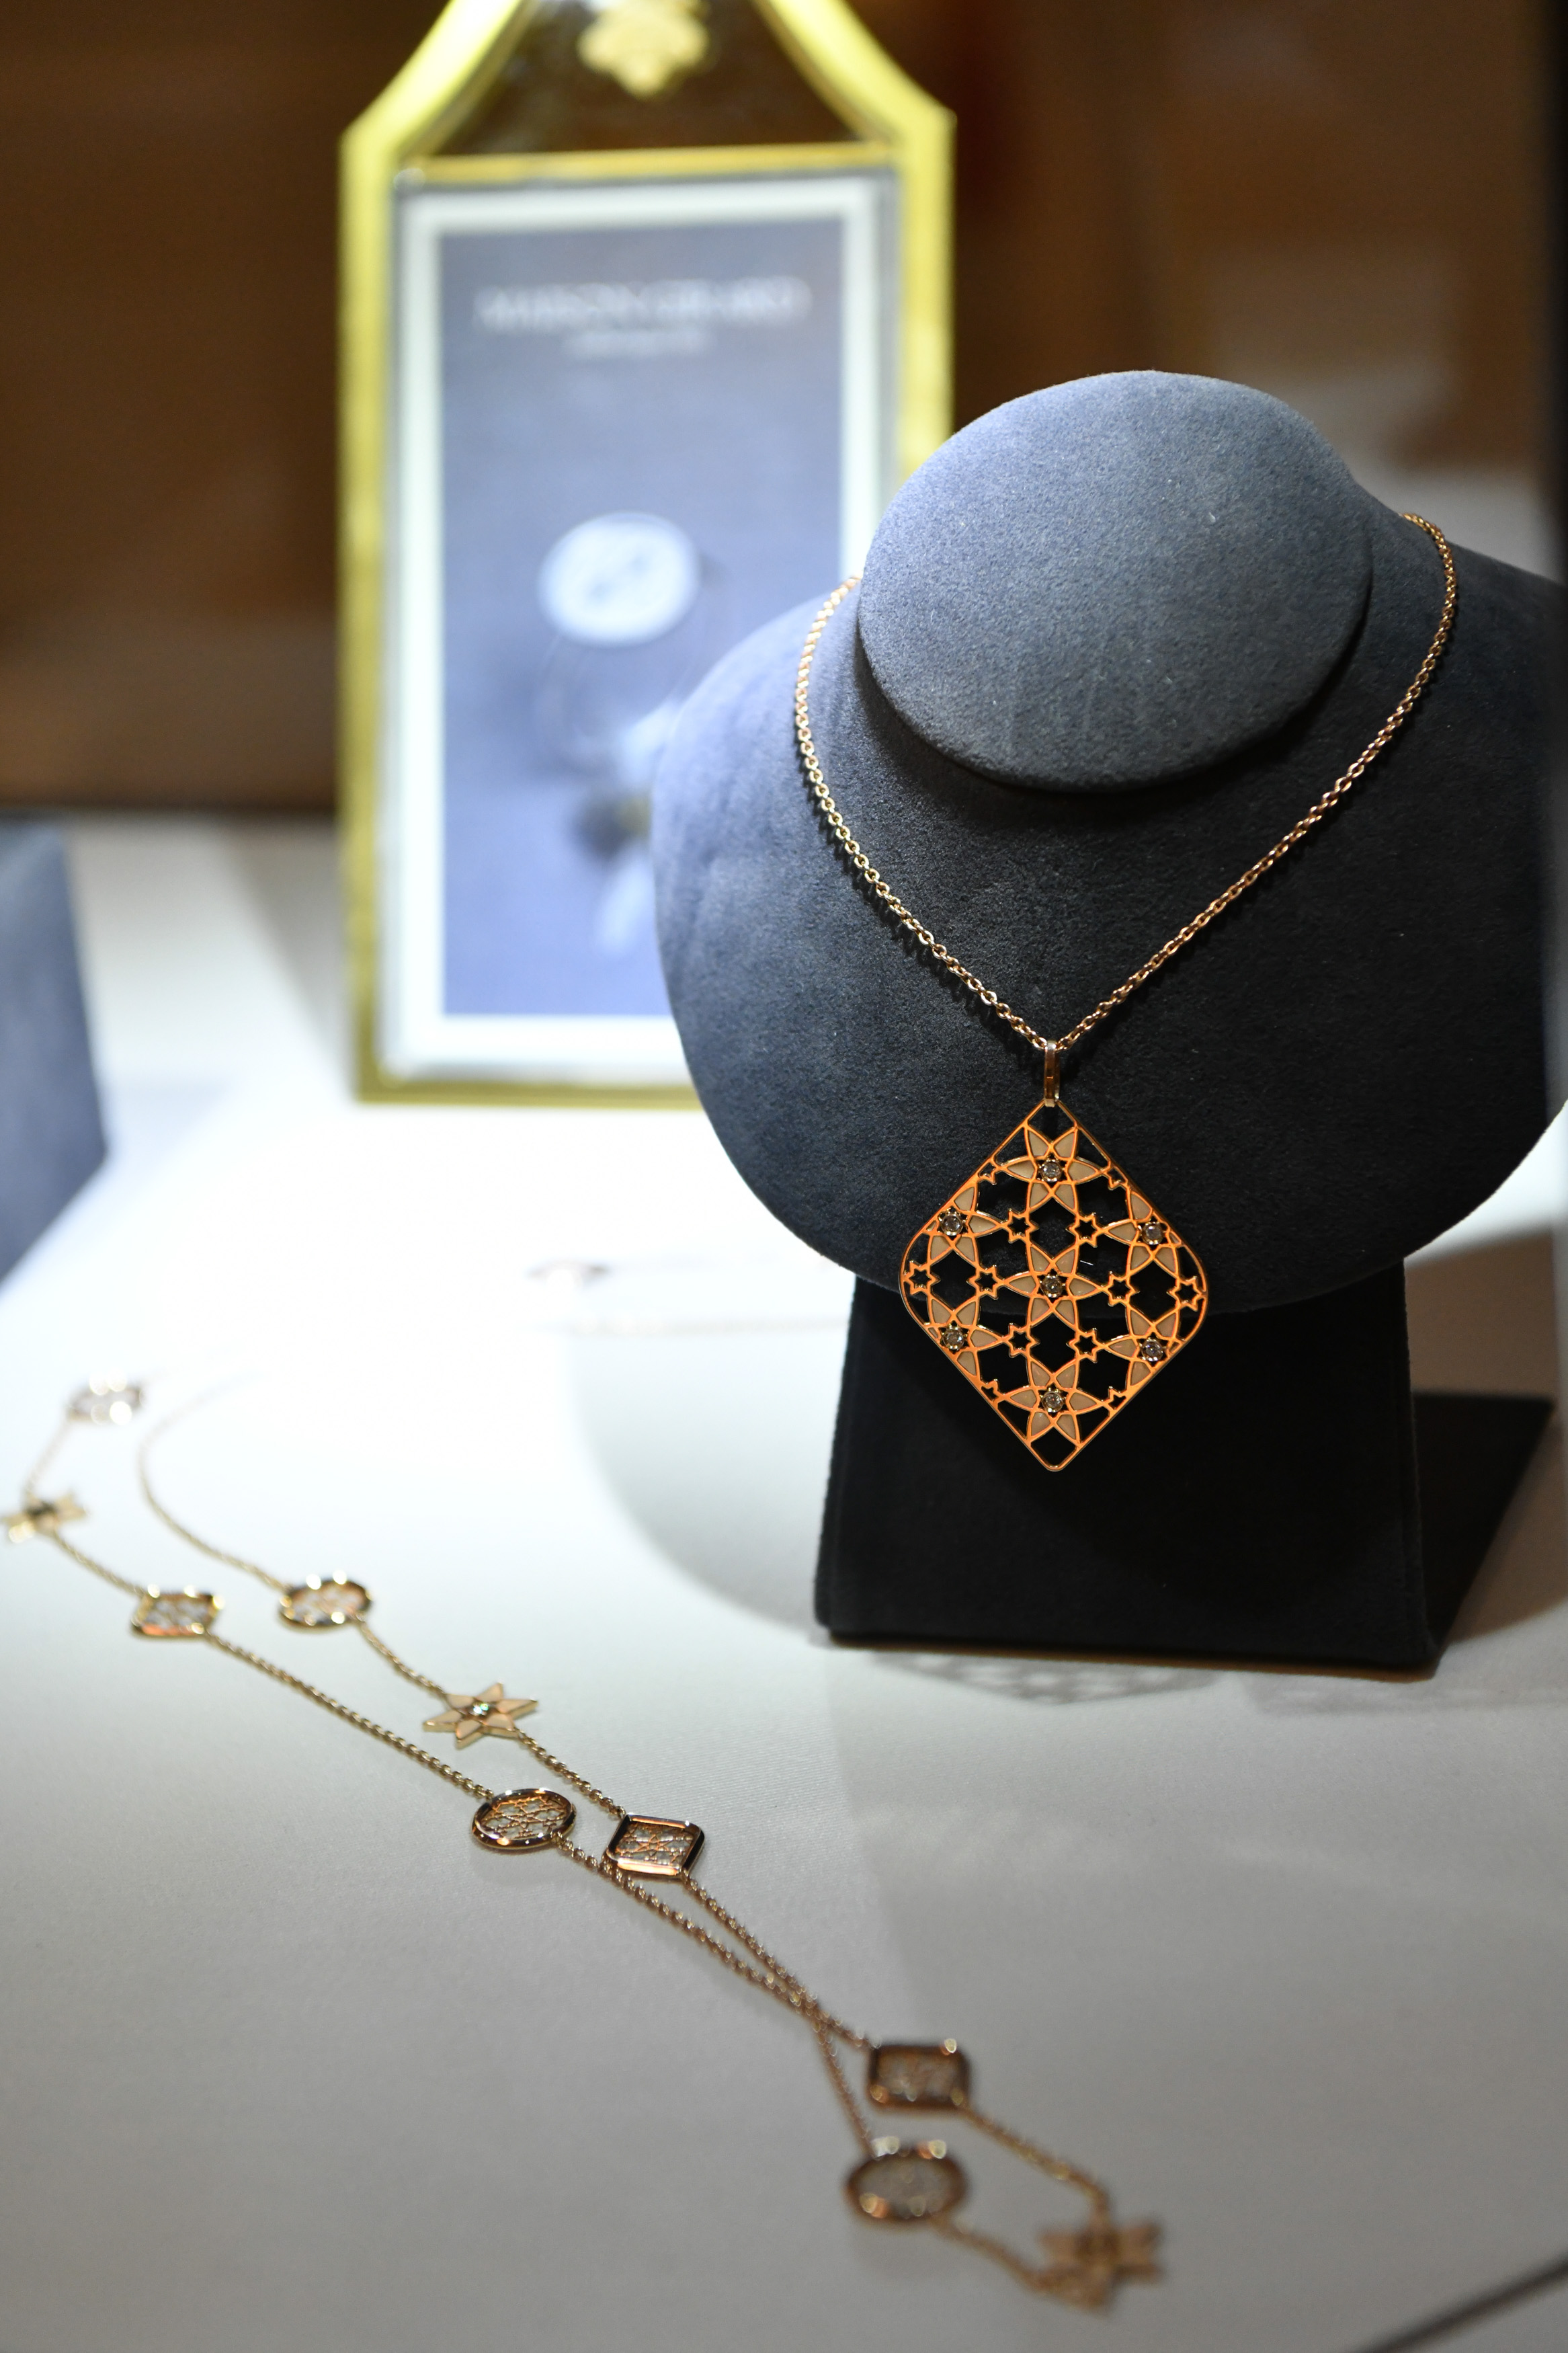 Business France: France brings jewellery craftsmanship to Hong